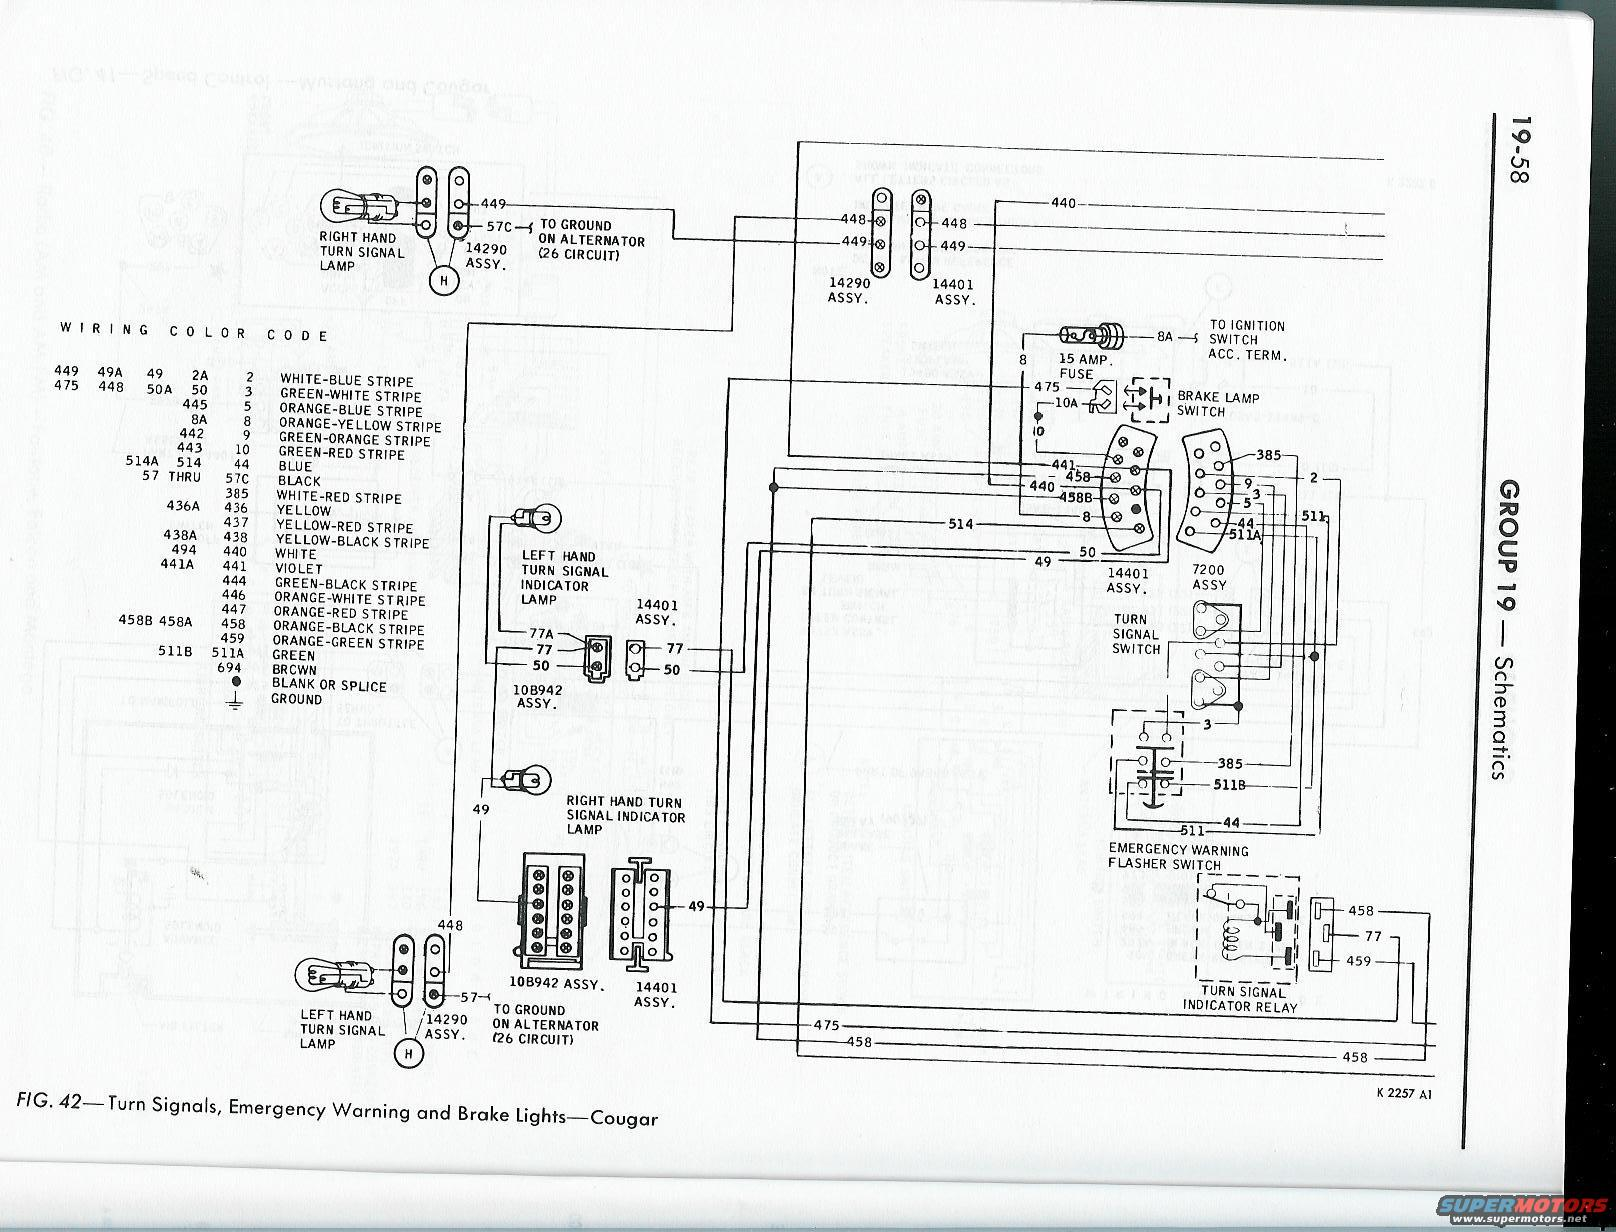 1965 mustang turn signal flasher wiring diagram  1965  free engine image for user manual download